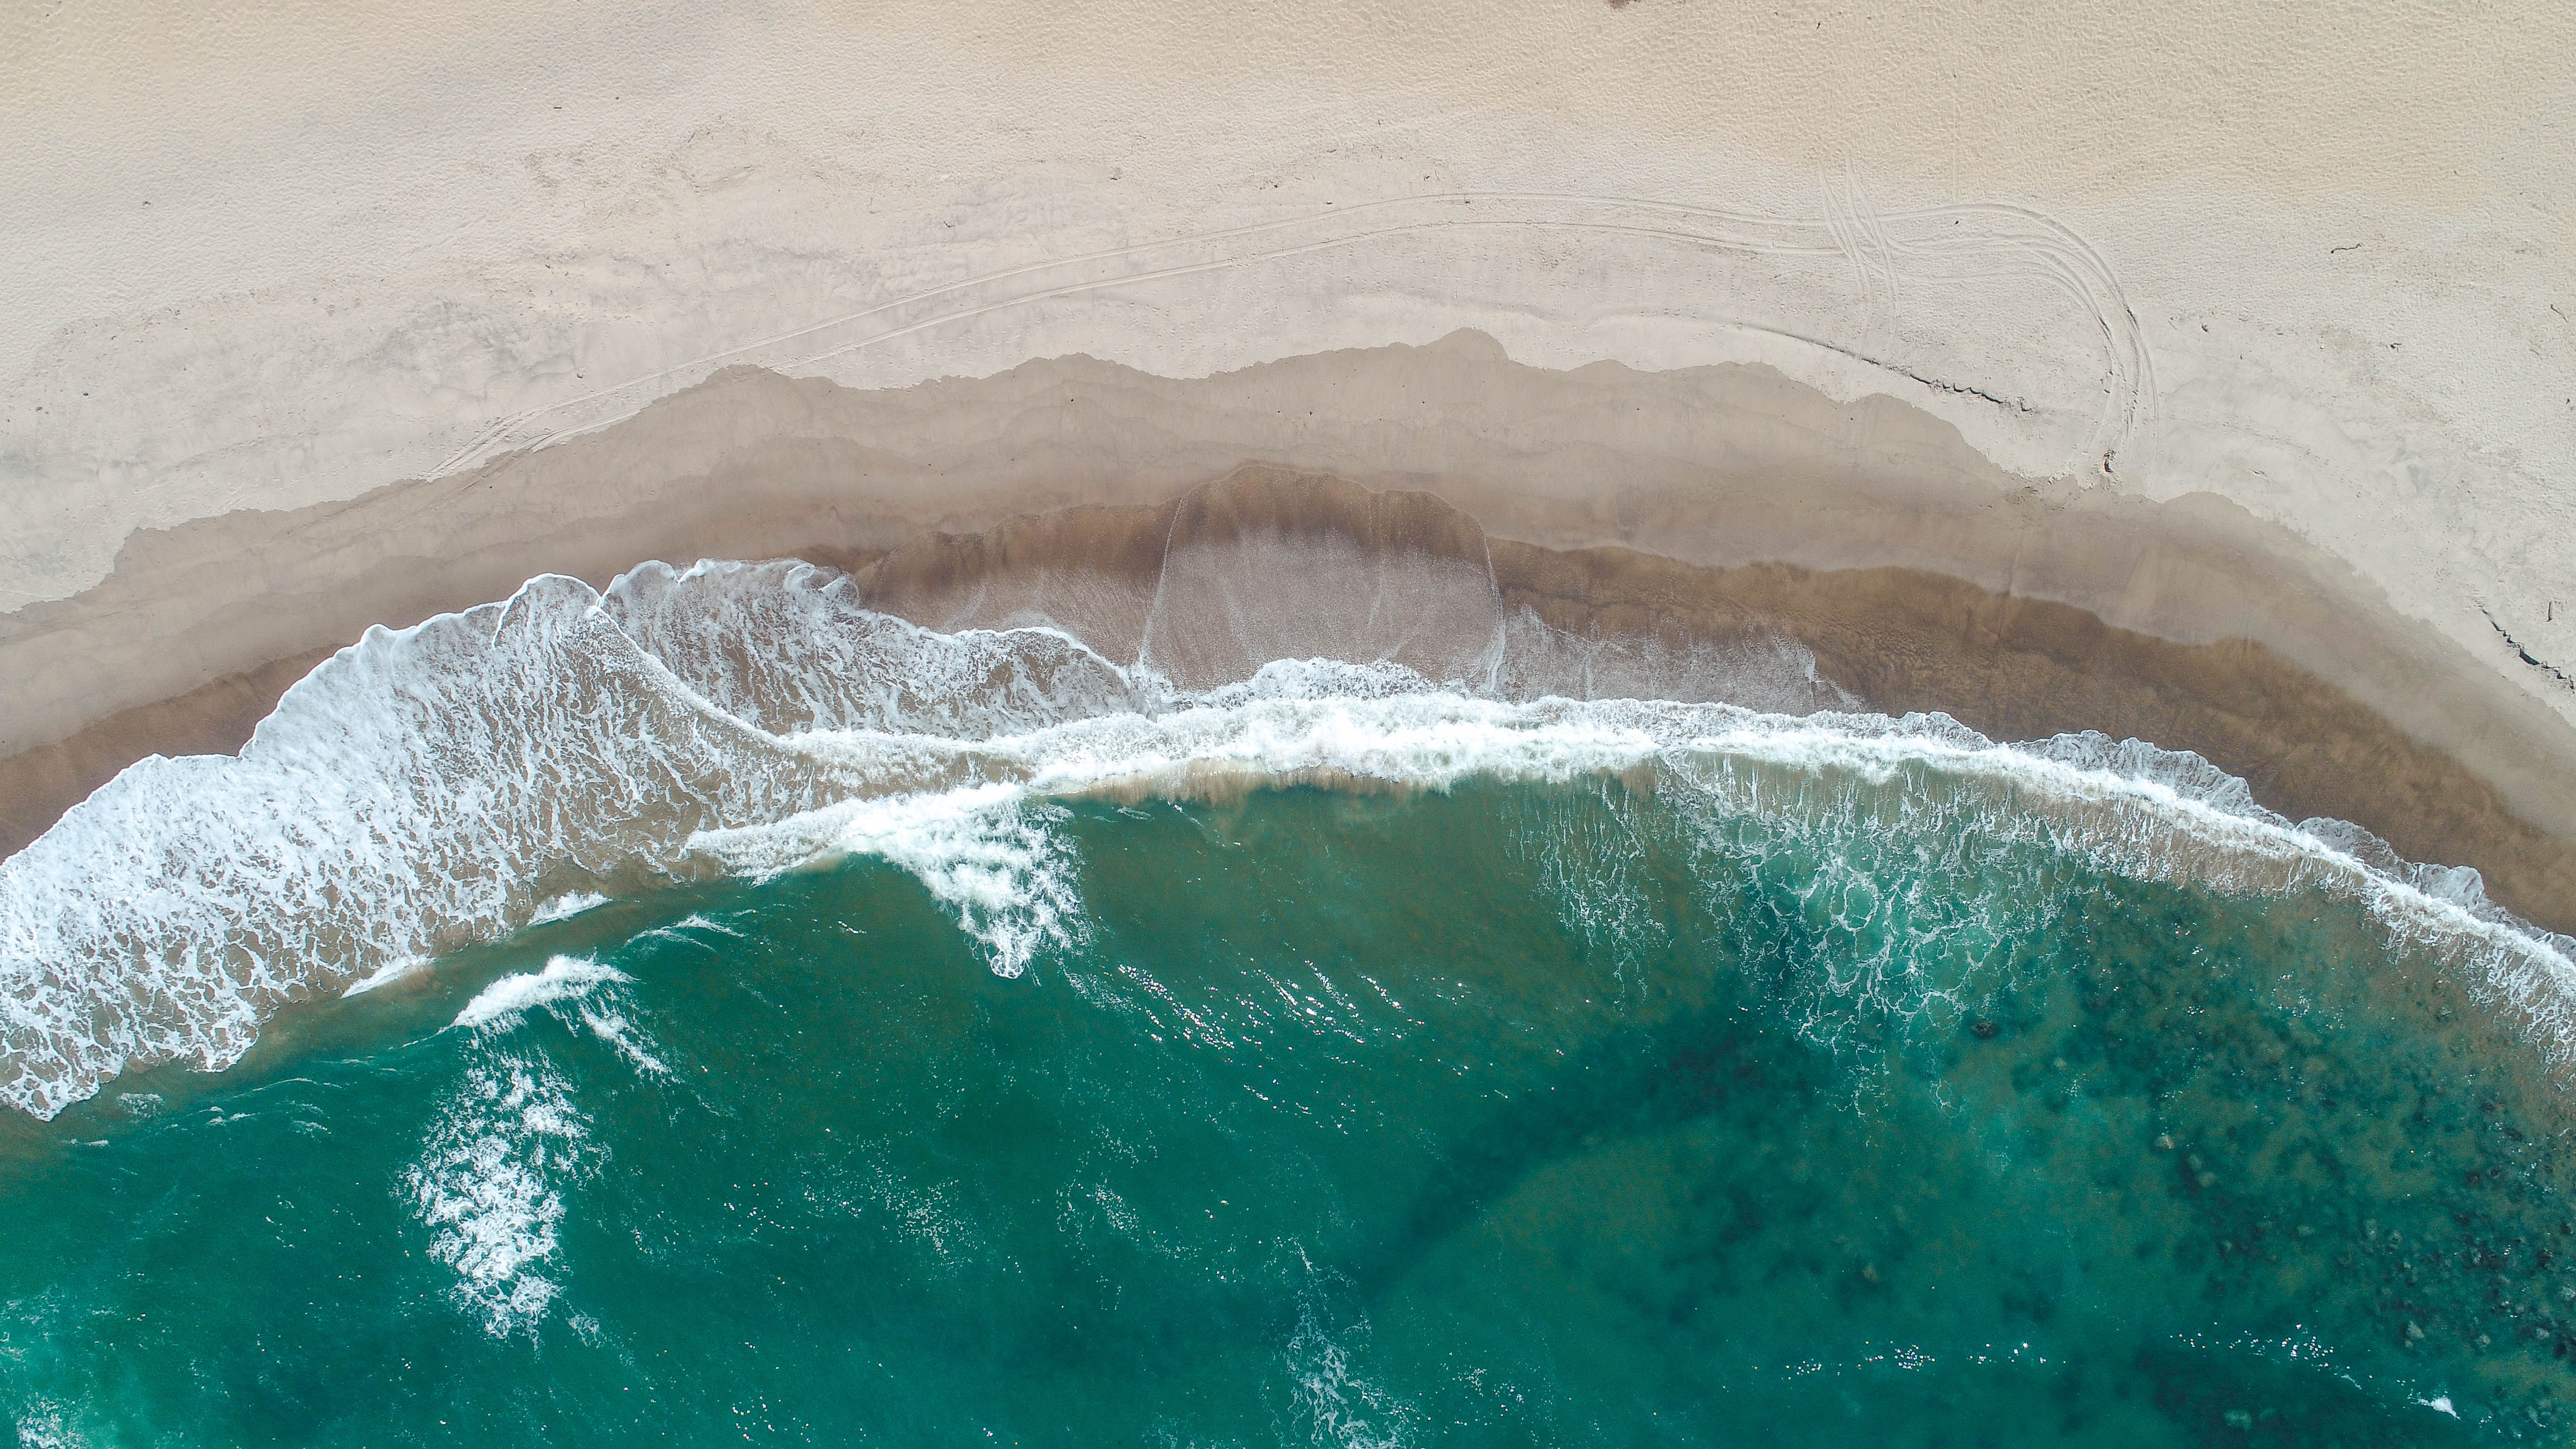 ocean waves hitting shore aerial photo